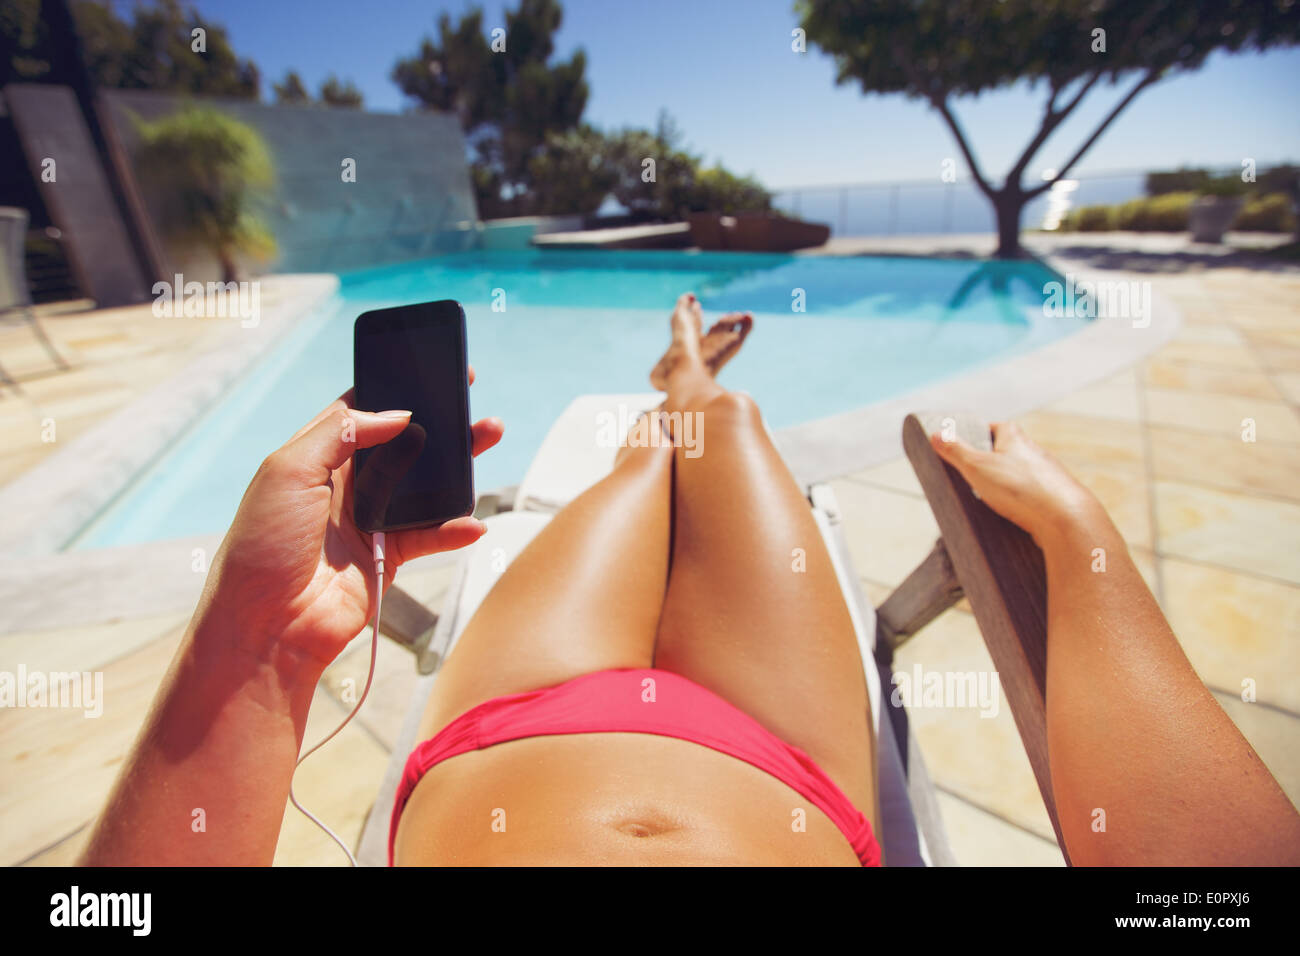 Young woman holding a smart phone by the pool. Female model relaxing on a deckchair using mobile phone. - Stock Image